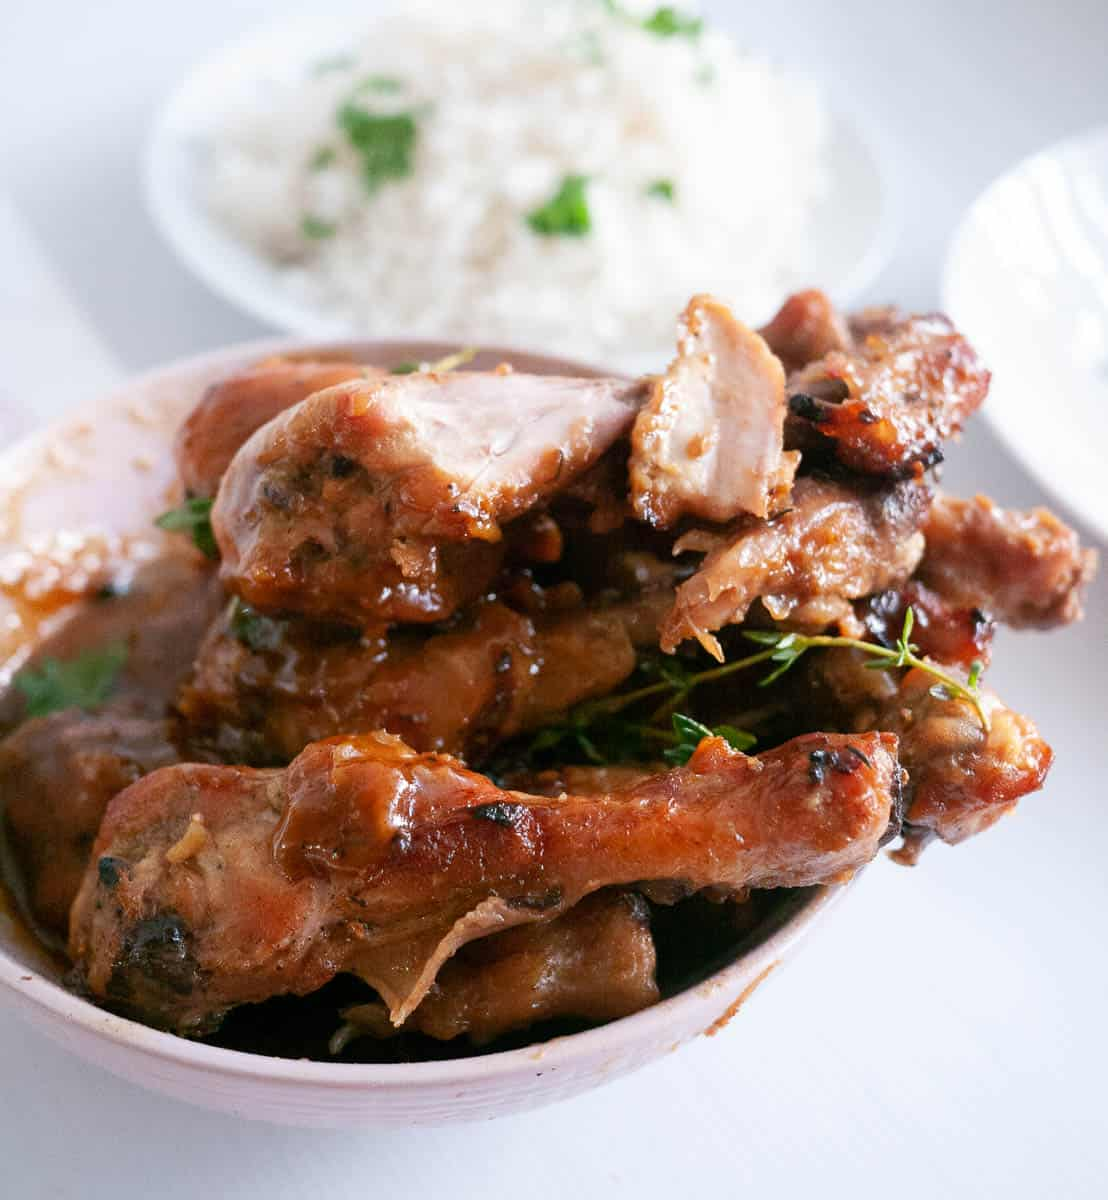 White bowl with baked chicken